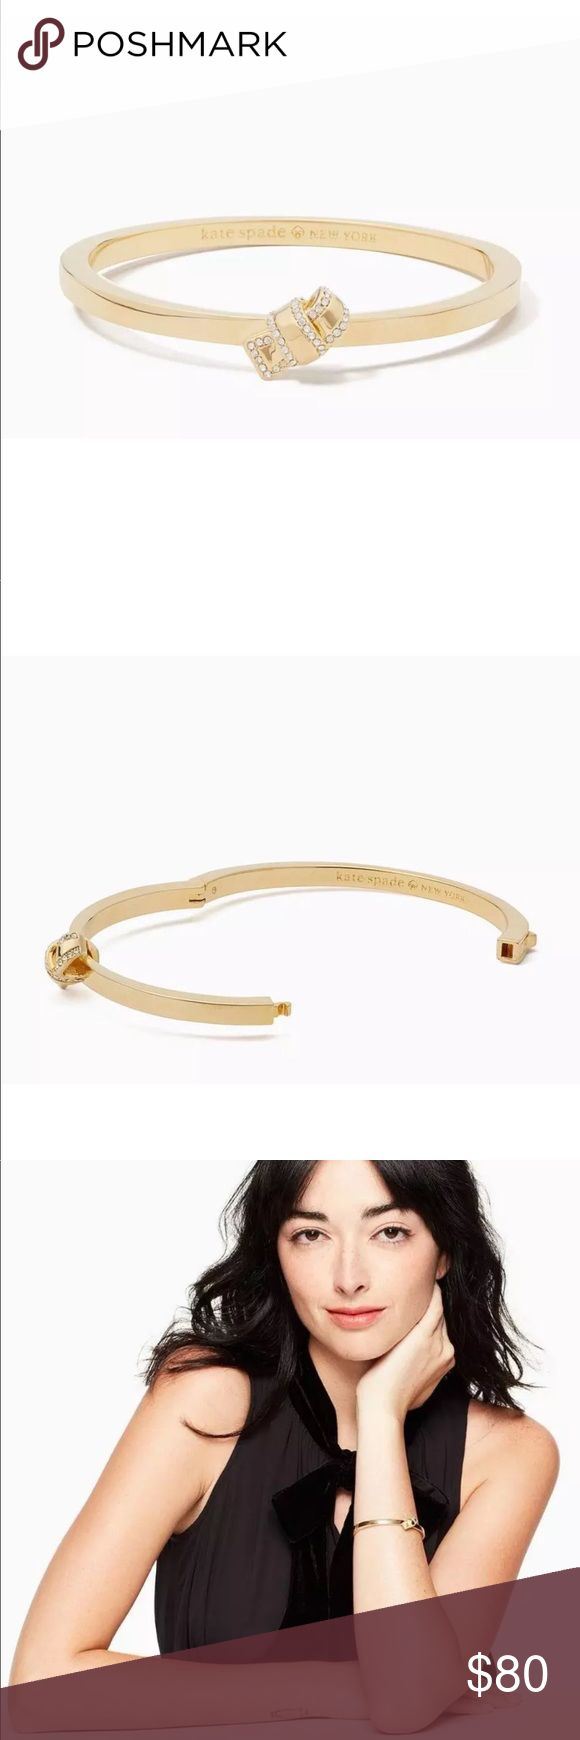 """Kate Spade Bracelet 100% authentic! Brand new with tags 💓   My boutique rules:  1. no commenting about price 2. No self advertising  3. No rude comments  4.) No advertising of other stores (such as you can find this at """"store"""" for more or less)  Let's keep a positive atmosphere ! If you don't like the listing please move on. (You will be blocked and no longer allowed to shop at my boutique if any rule is broken.) kate spade Jewelry Bracelets"""